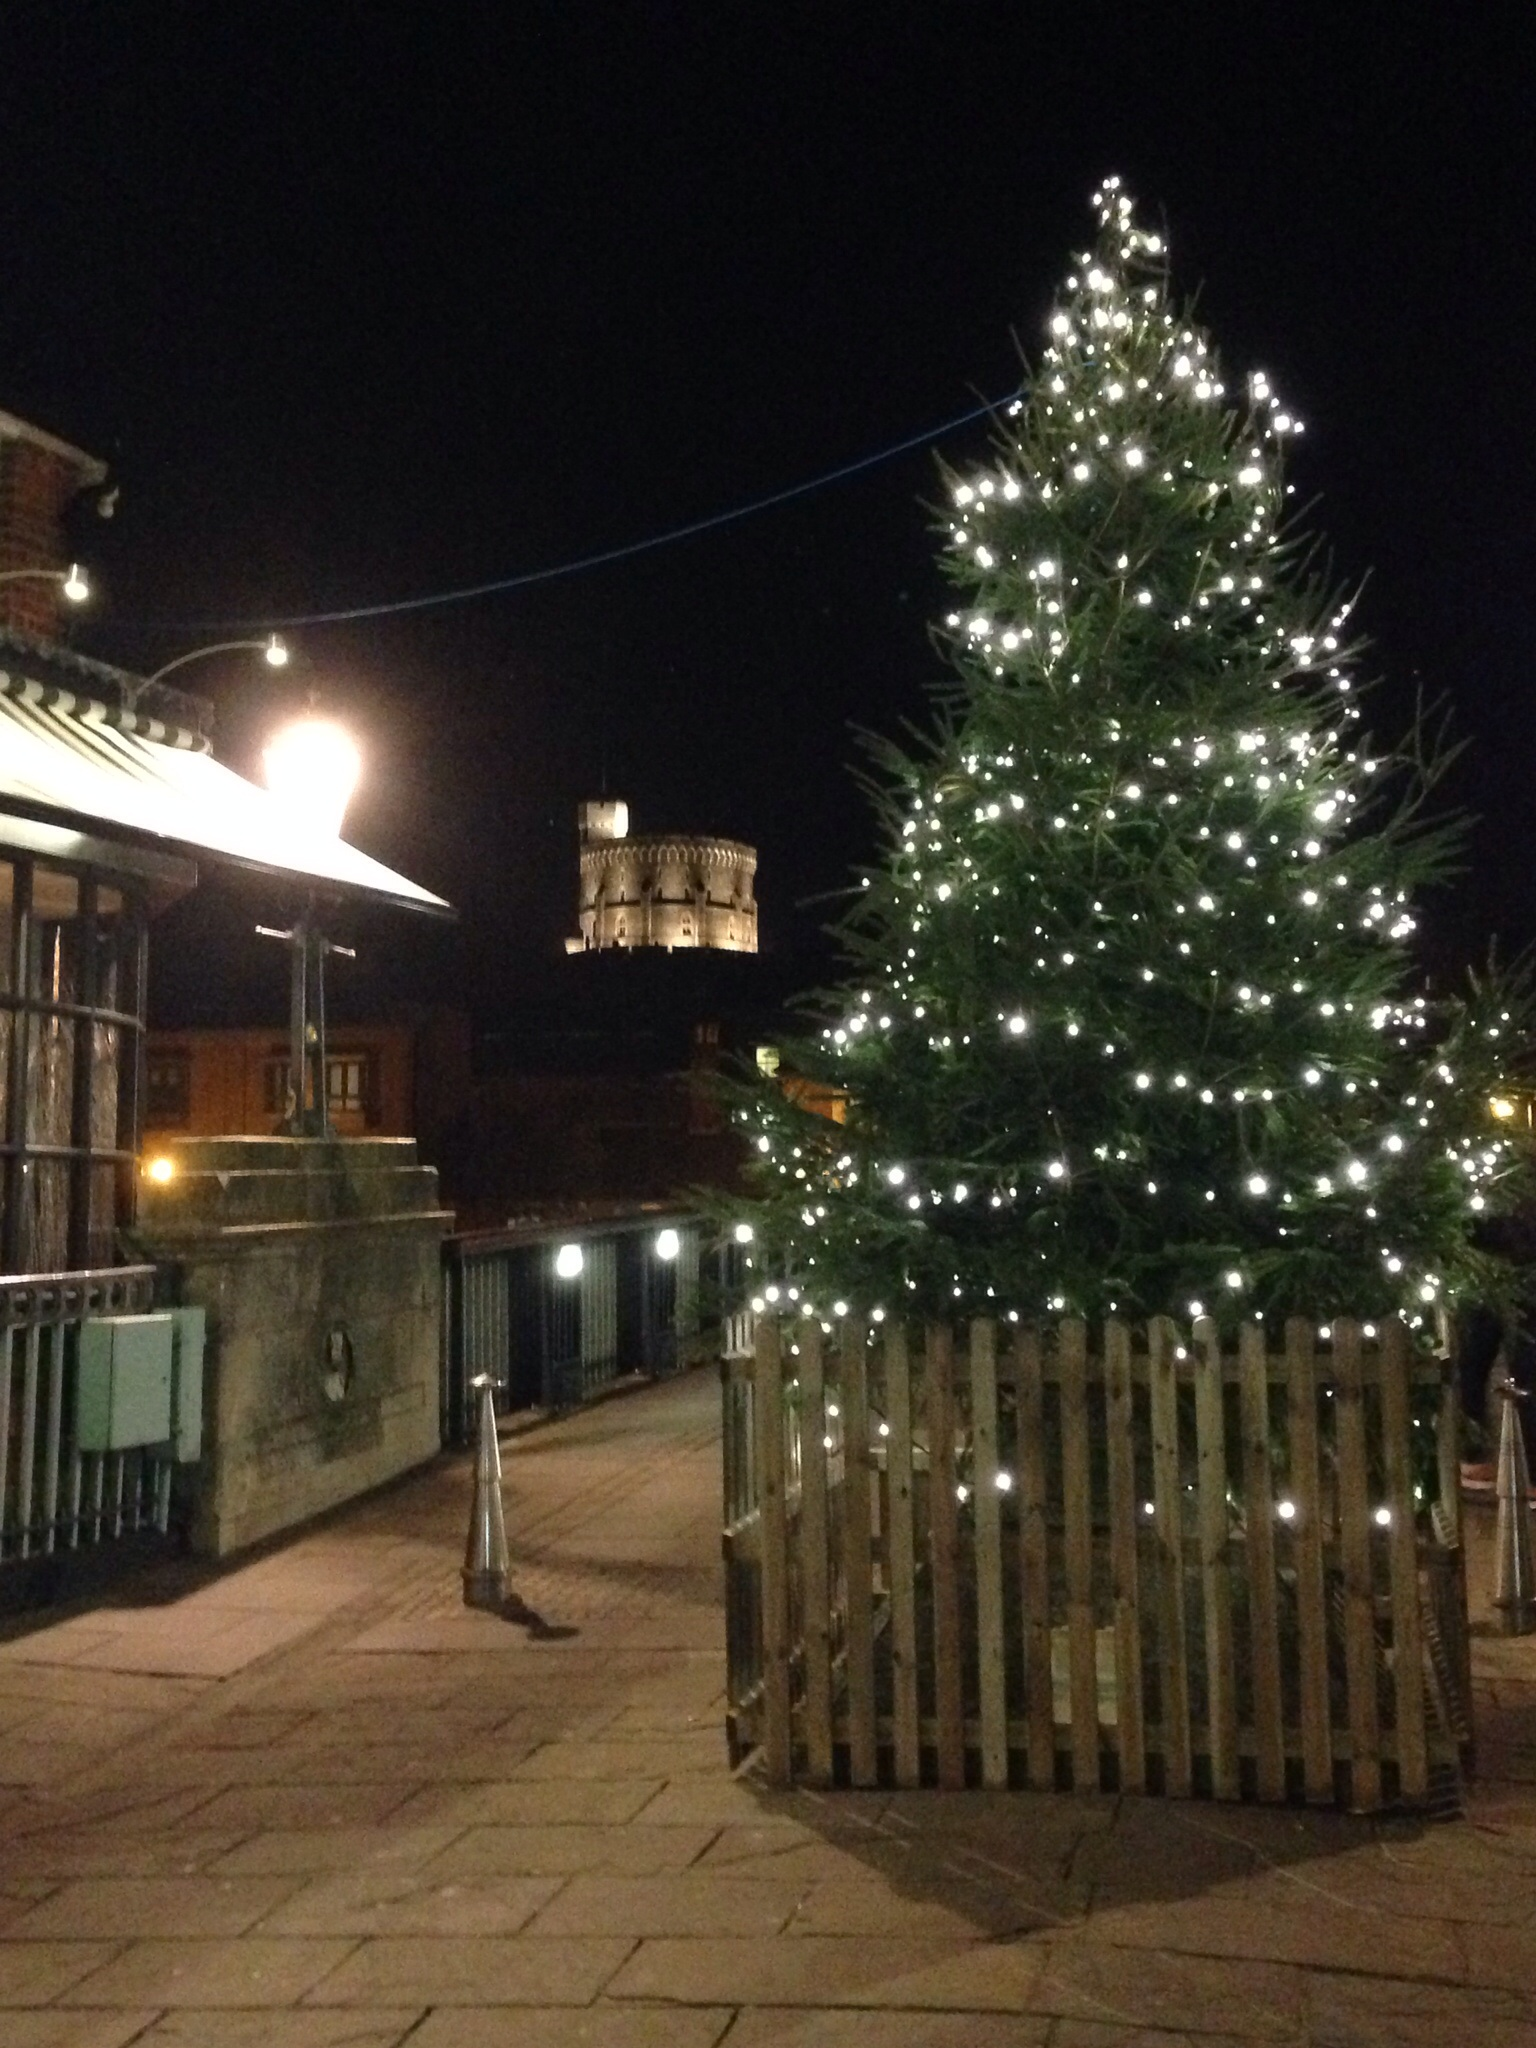 Castle to glow this Christmas